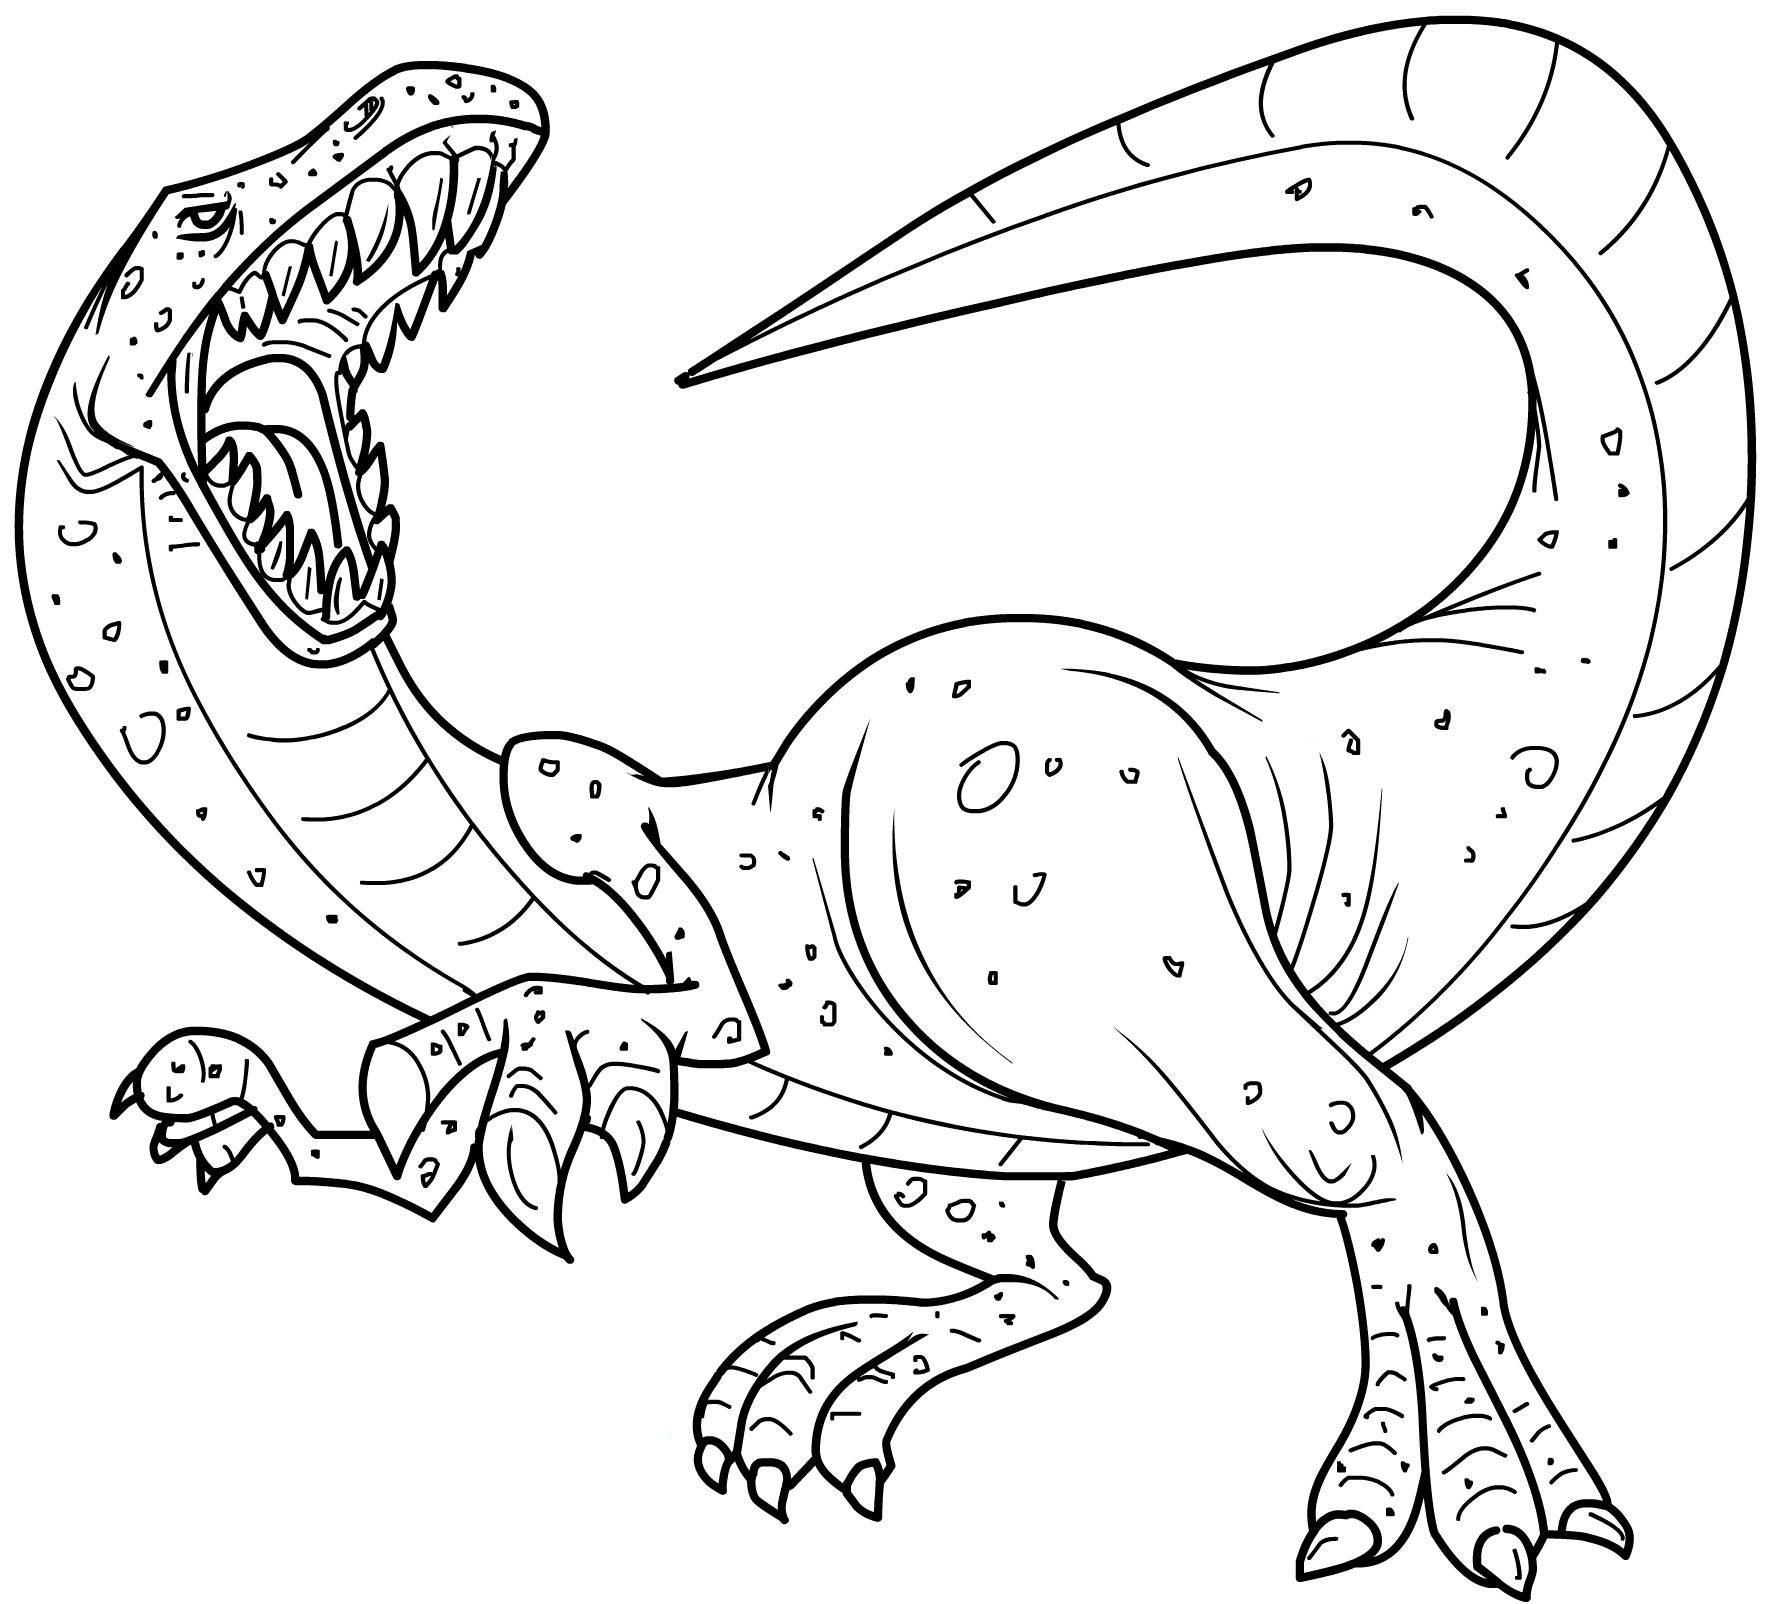 dinosaur color pages baby dinosaur coloring pages for preschoolers activity color pages dinosaur